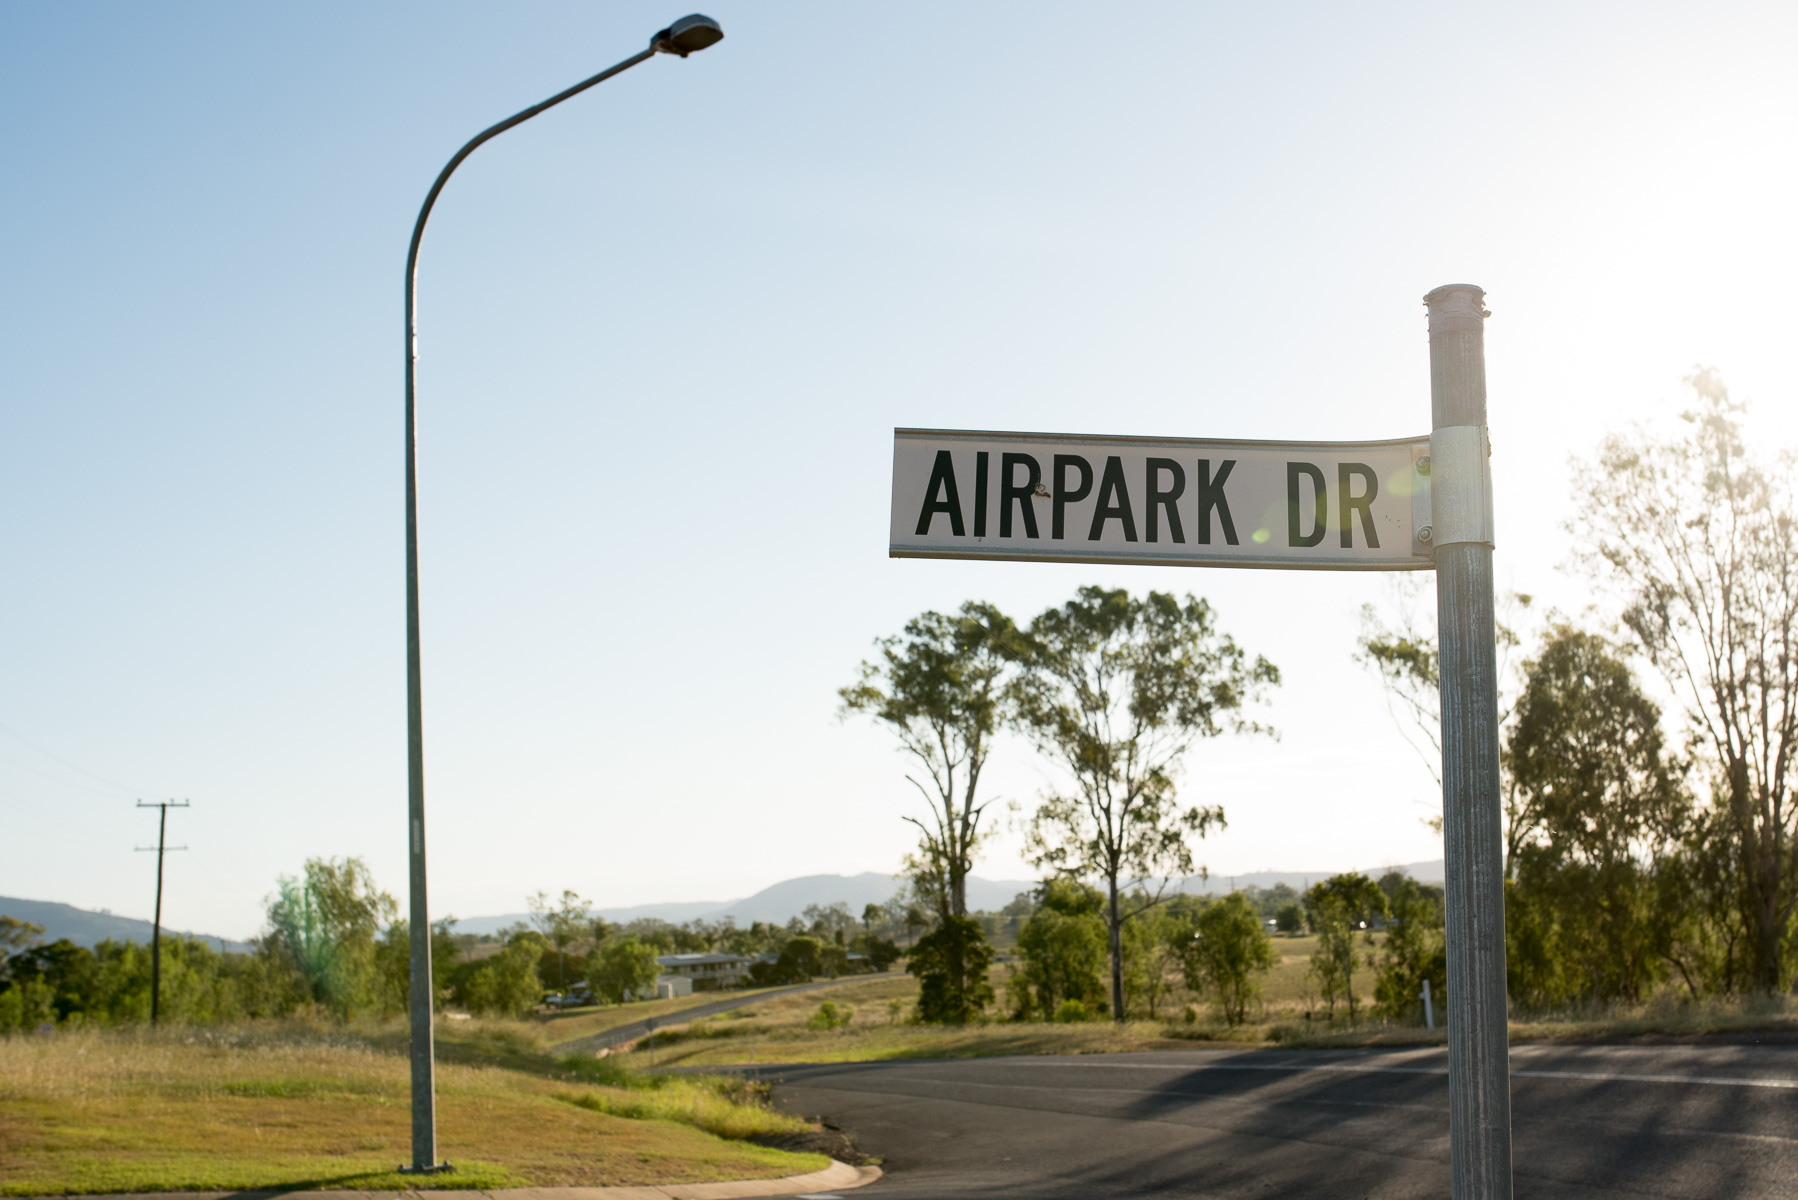 gatton-airpark-5.jpg